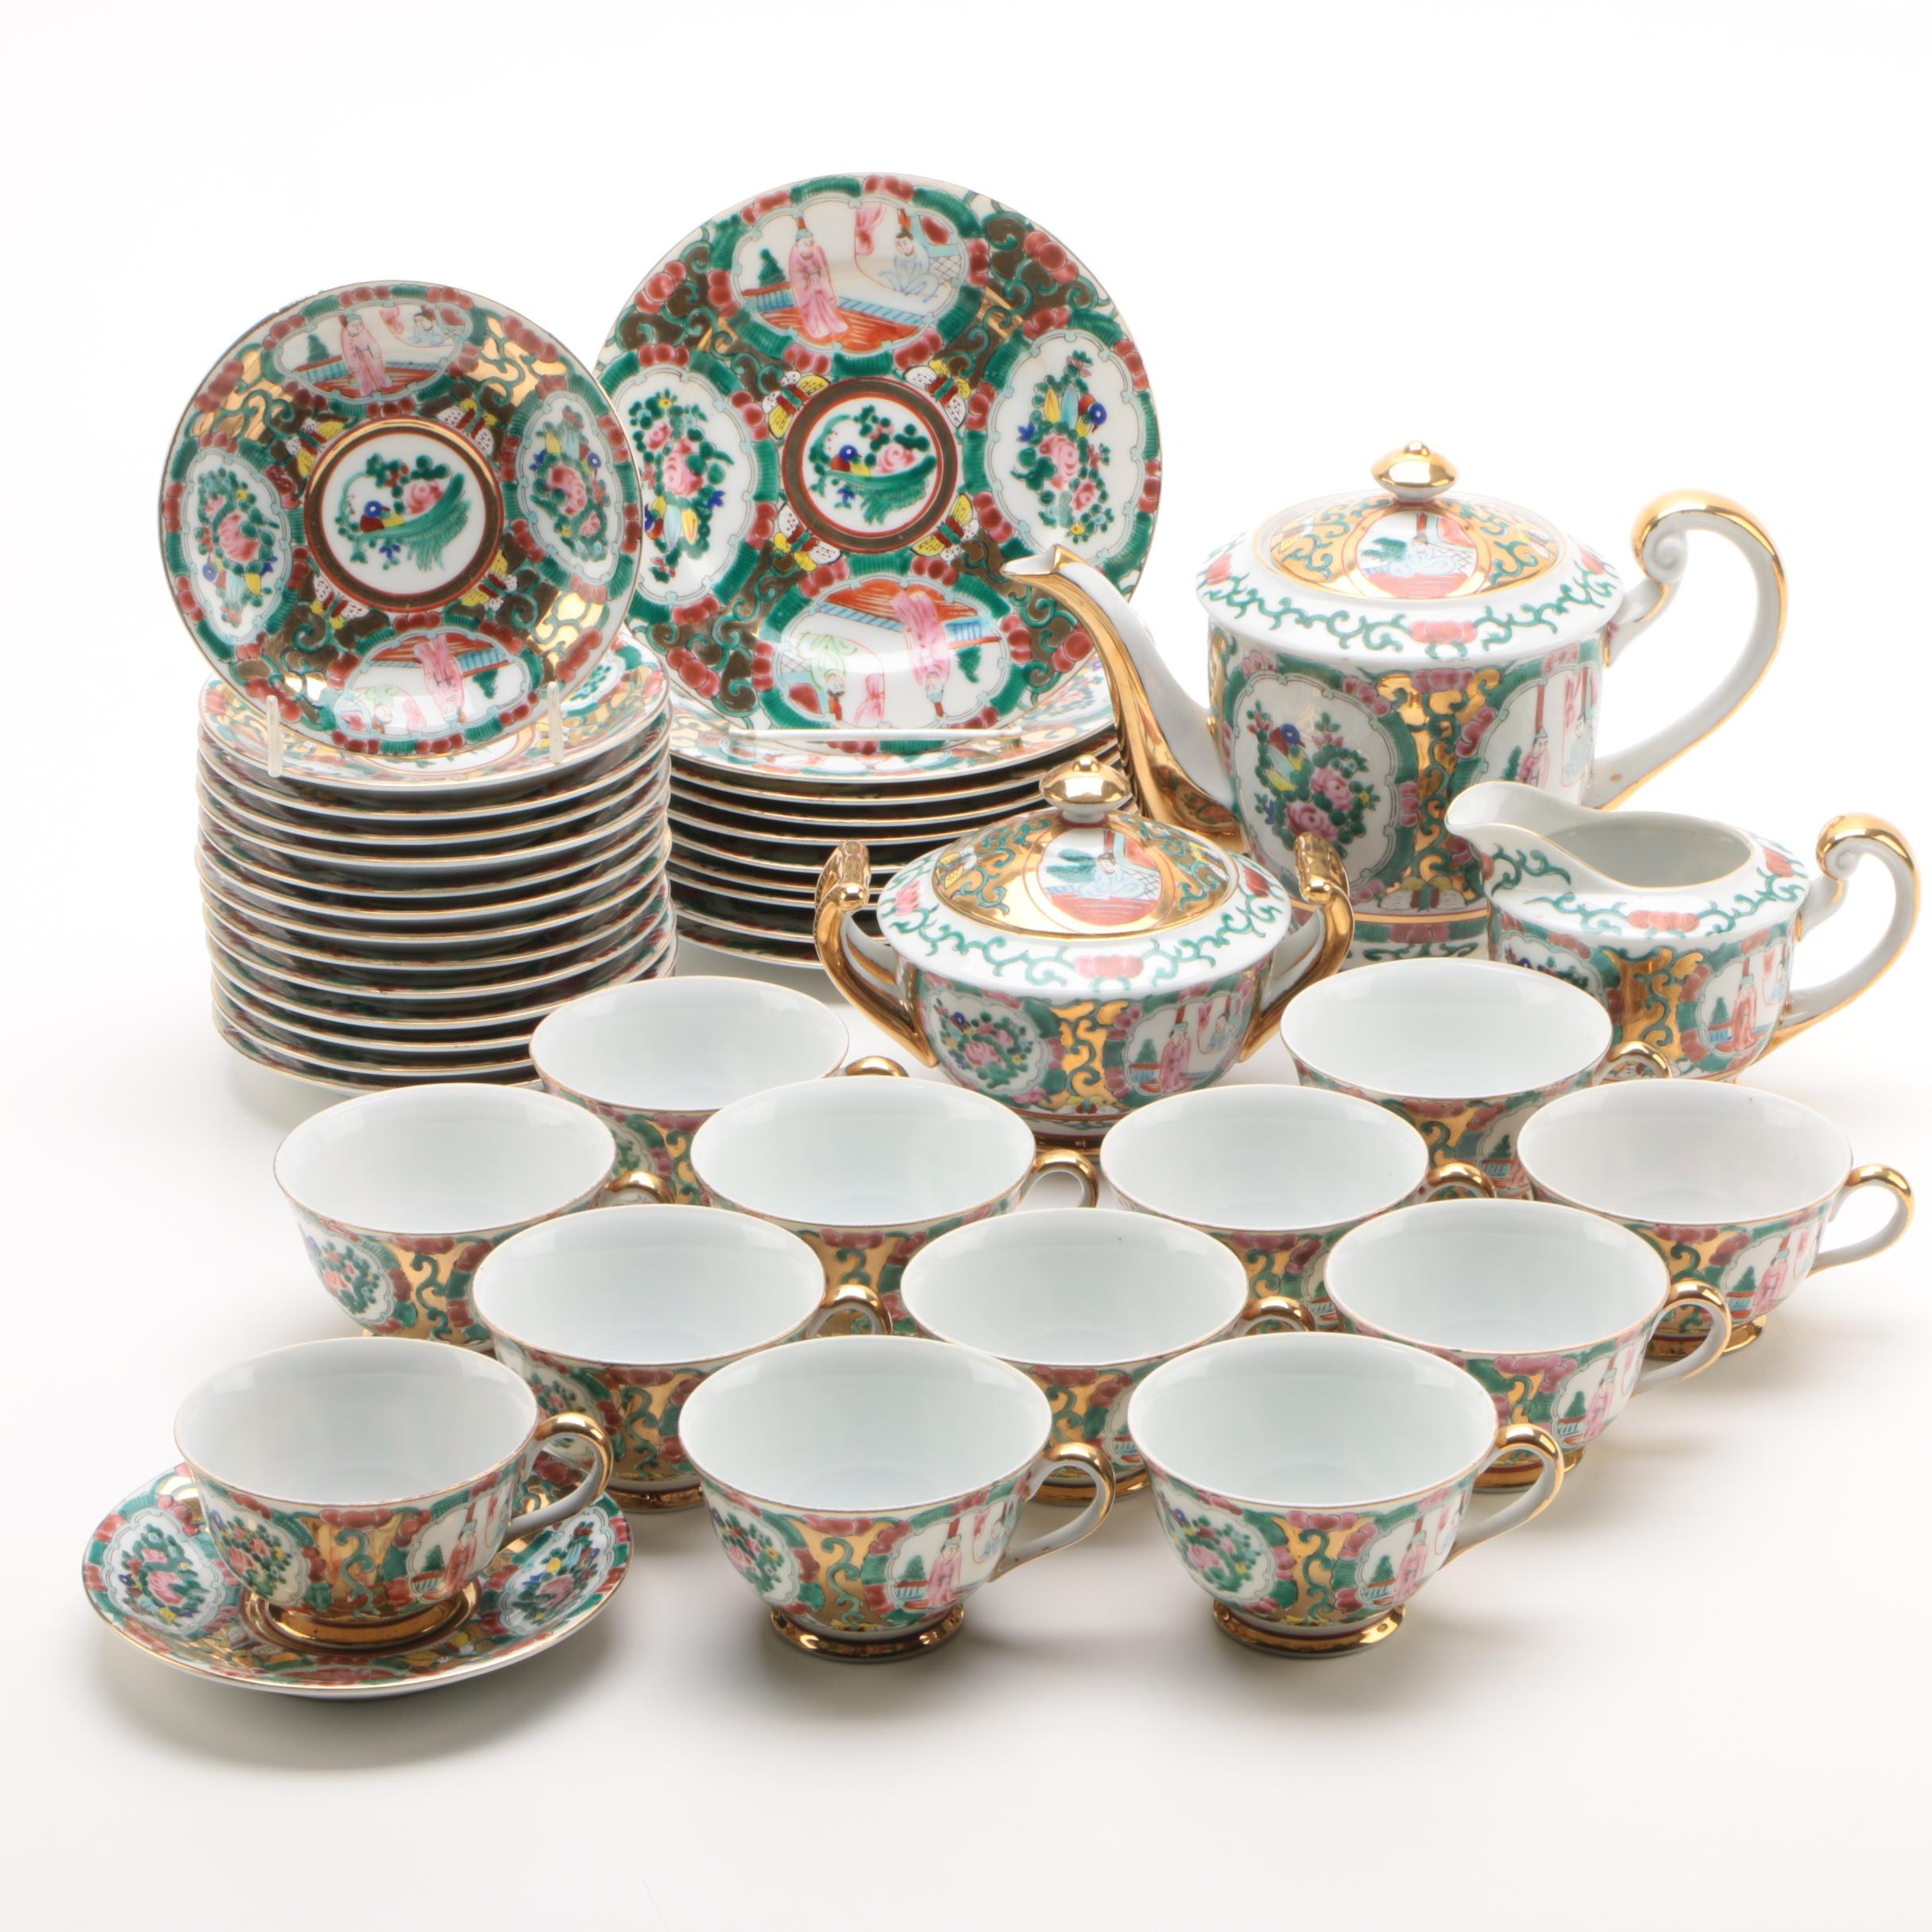 Chinese Hand-Painted Rose Medallion Porcelain Tea Service